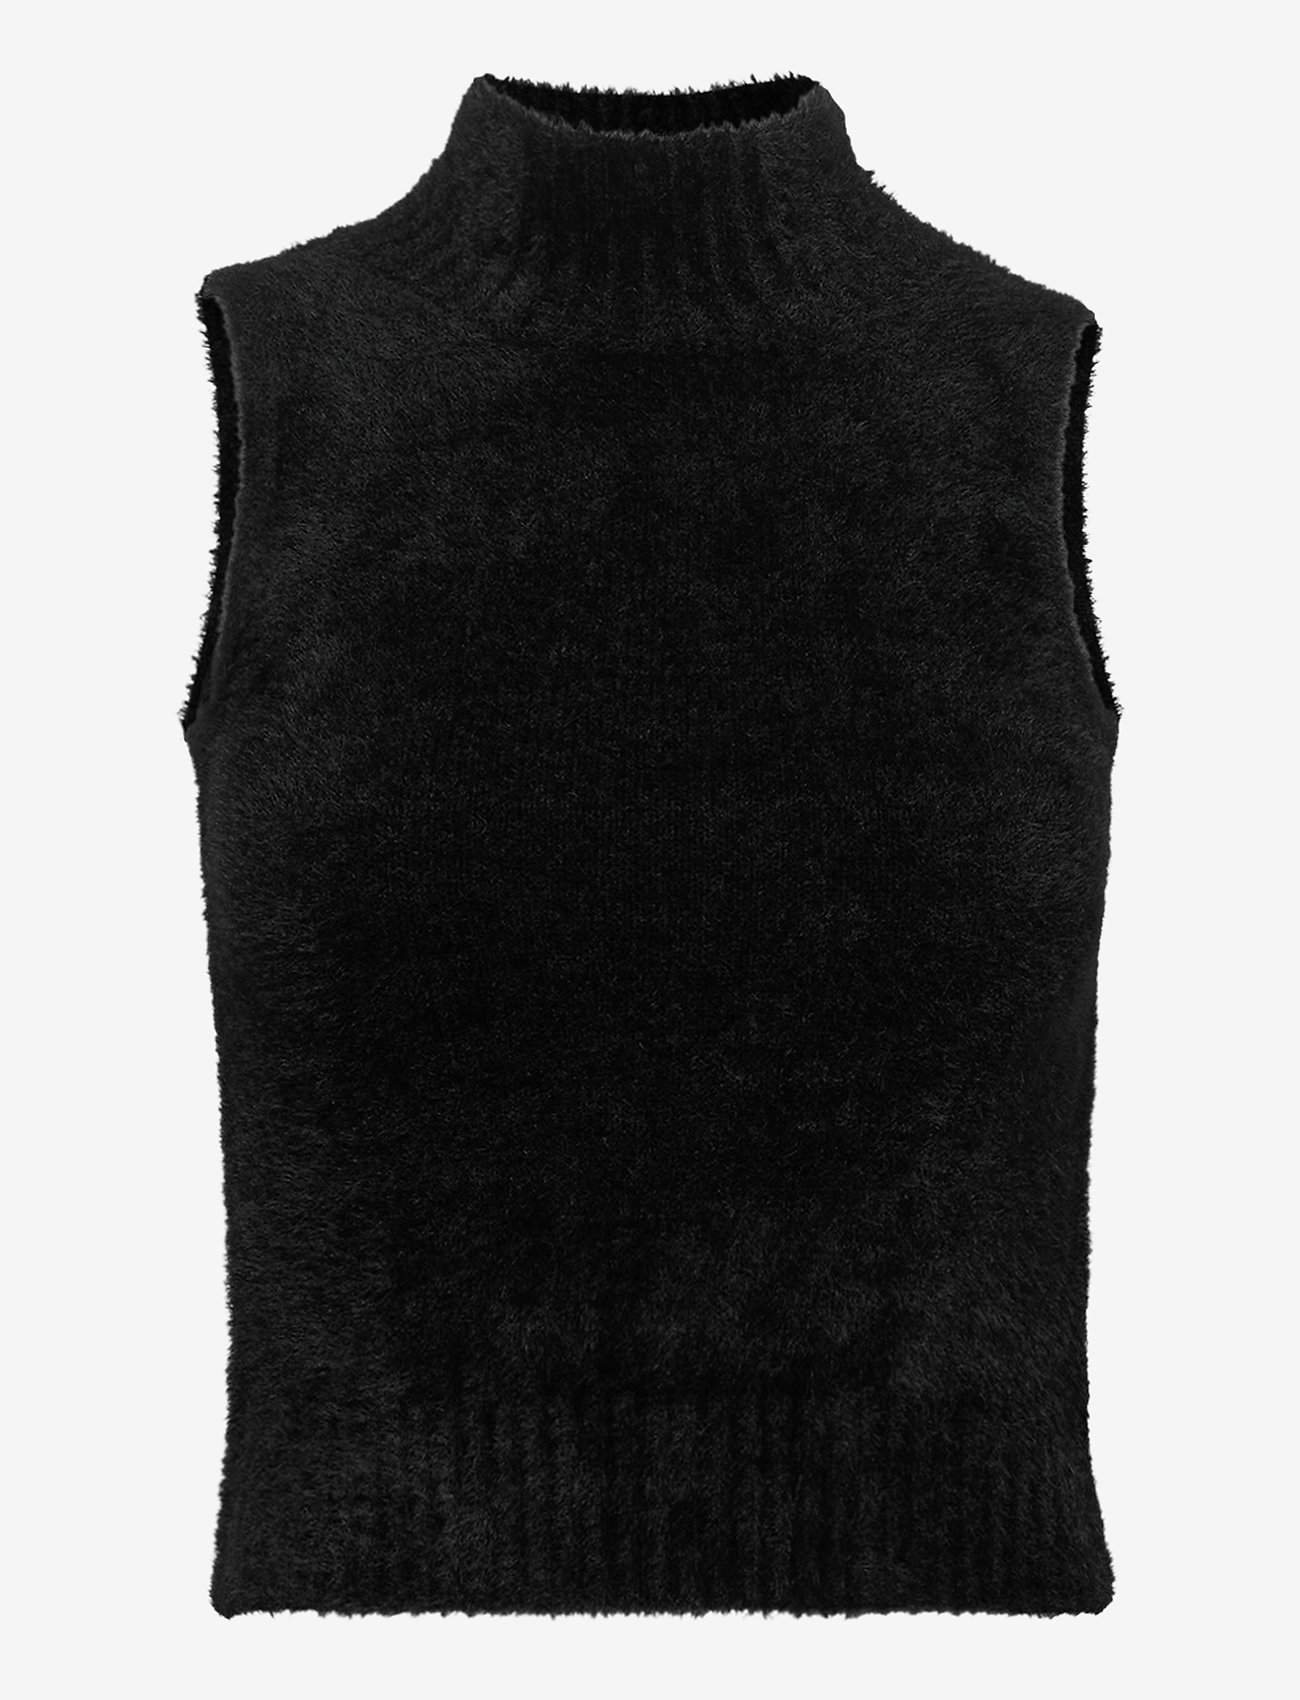 GUESS Jeans - LORE TURTLE NECK SWEATER - knitted vests - jet black a996 - 0